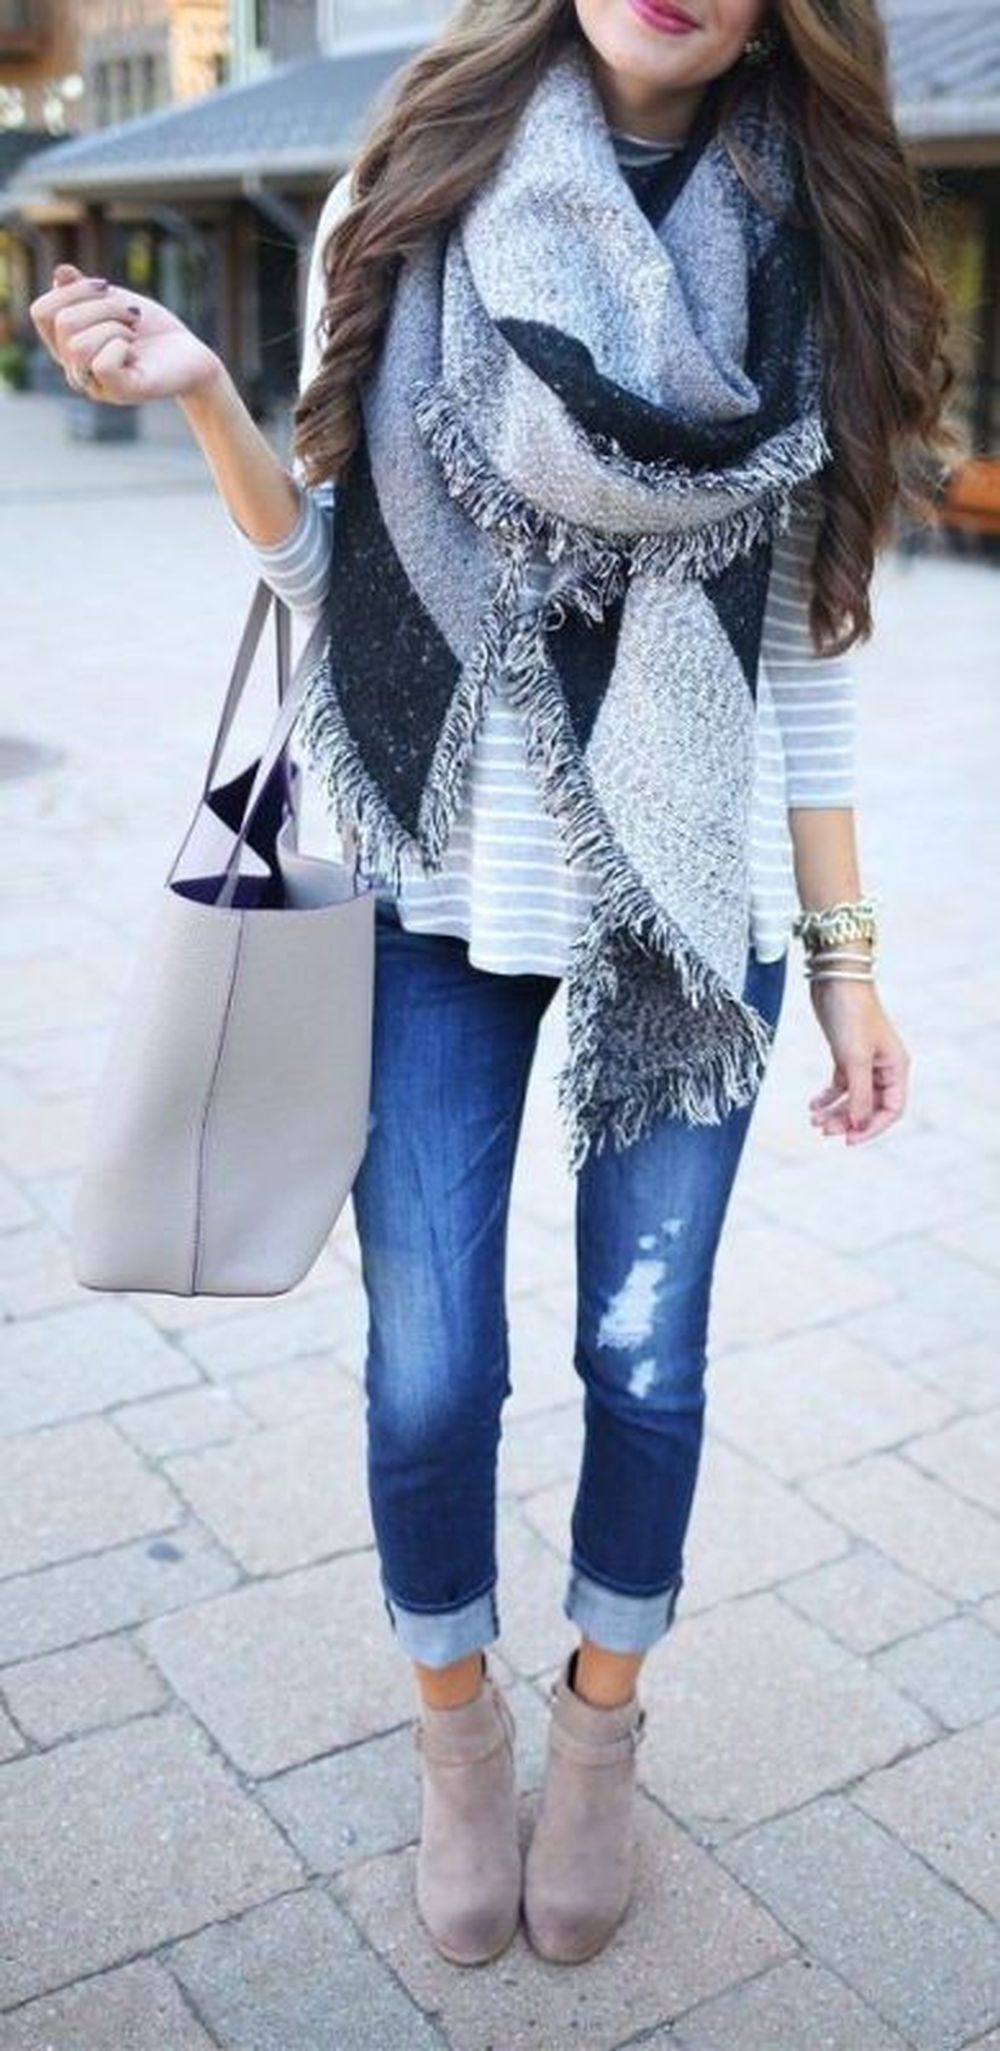 Fashionable scarves for winter outfits 62